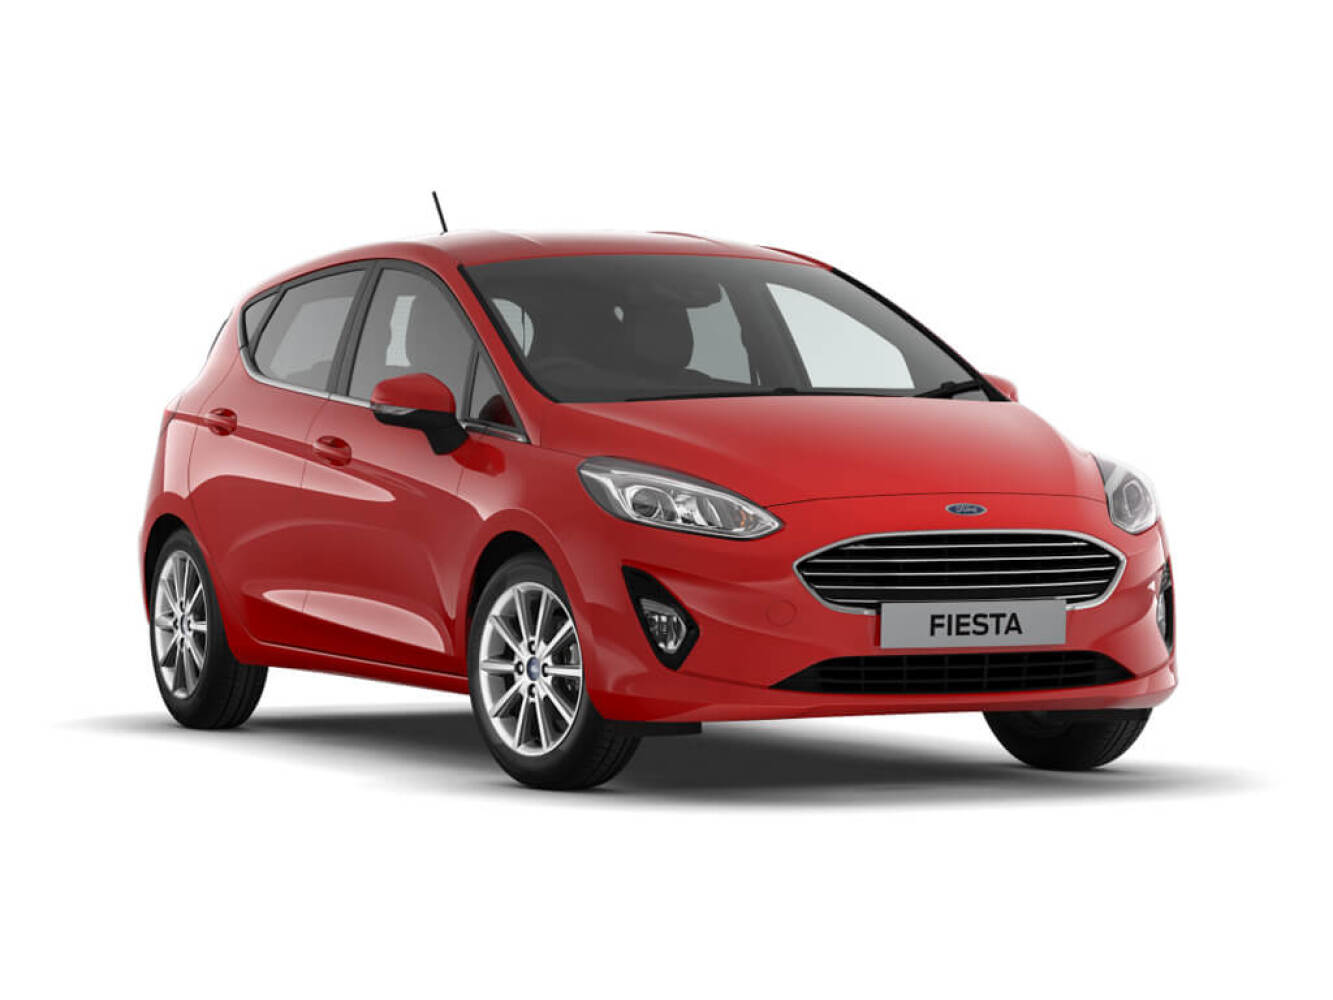 new ford fiesta 1 5 tdci 120 titanium 5dr diesel hatchback for sale bristol street. Black Bedroom Furniture Sets. Home Design Ideas